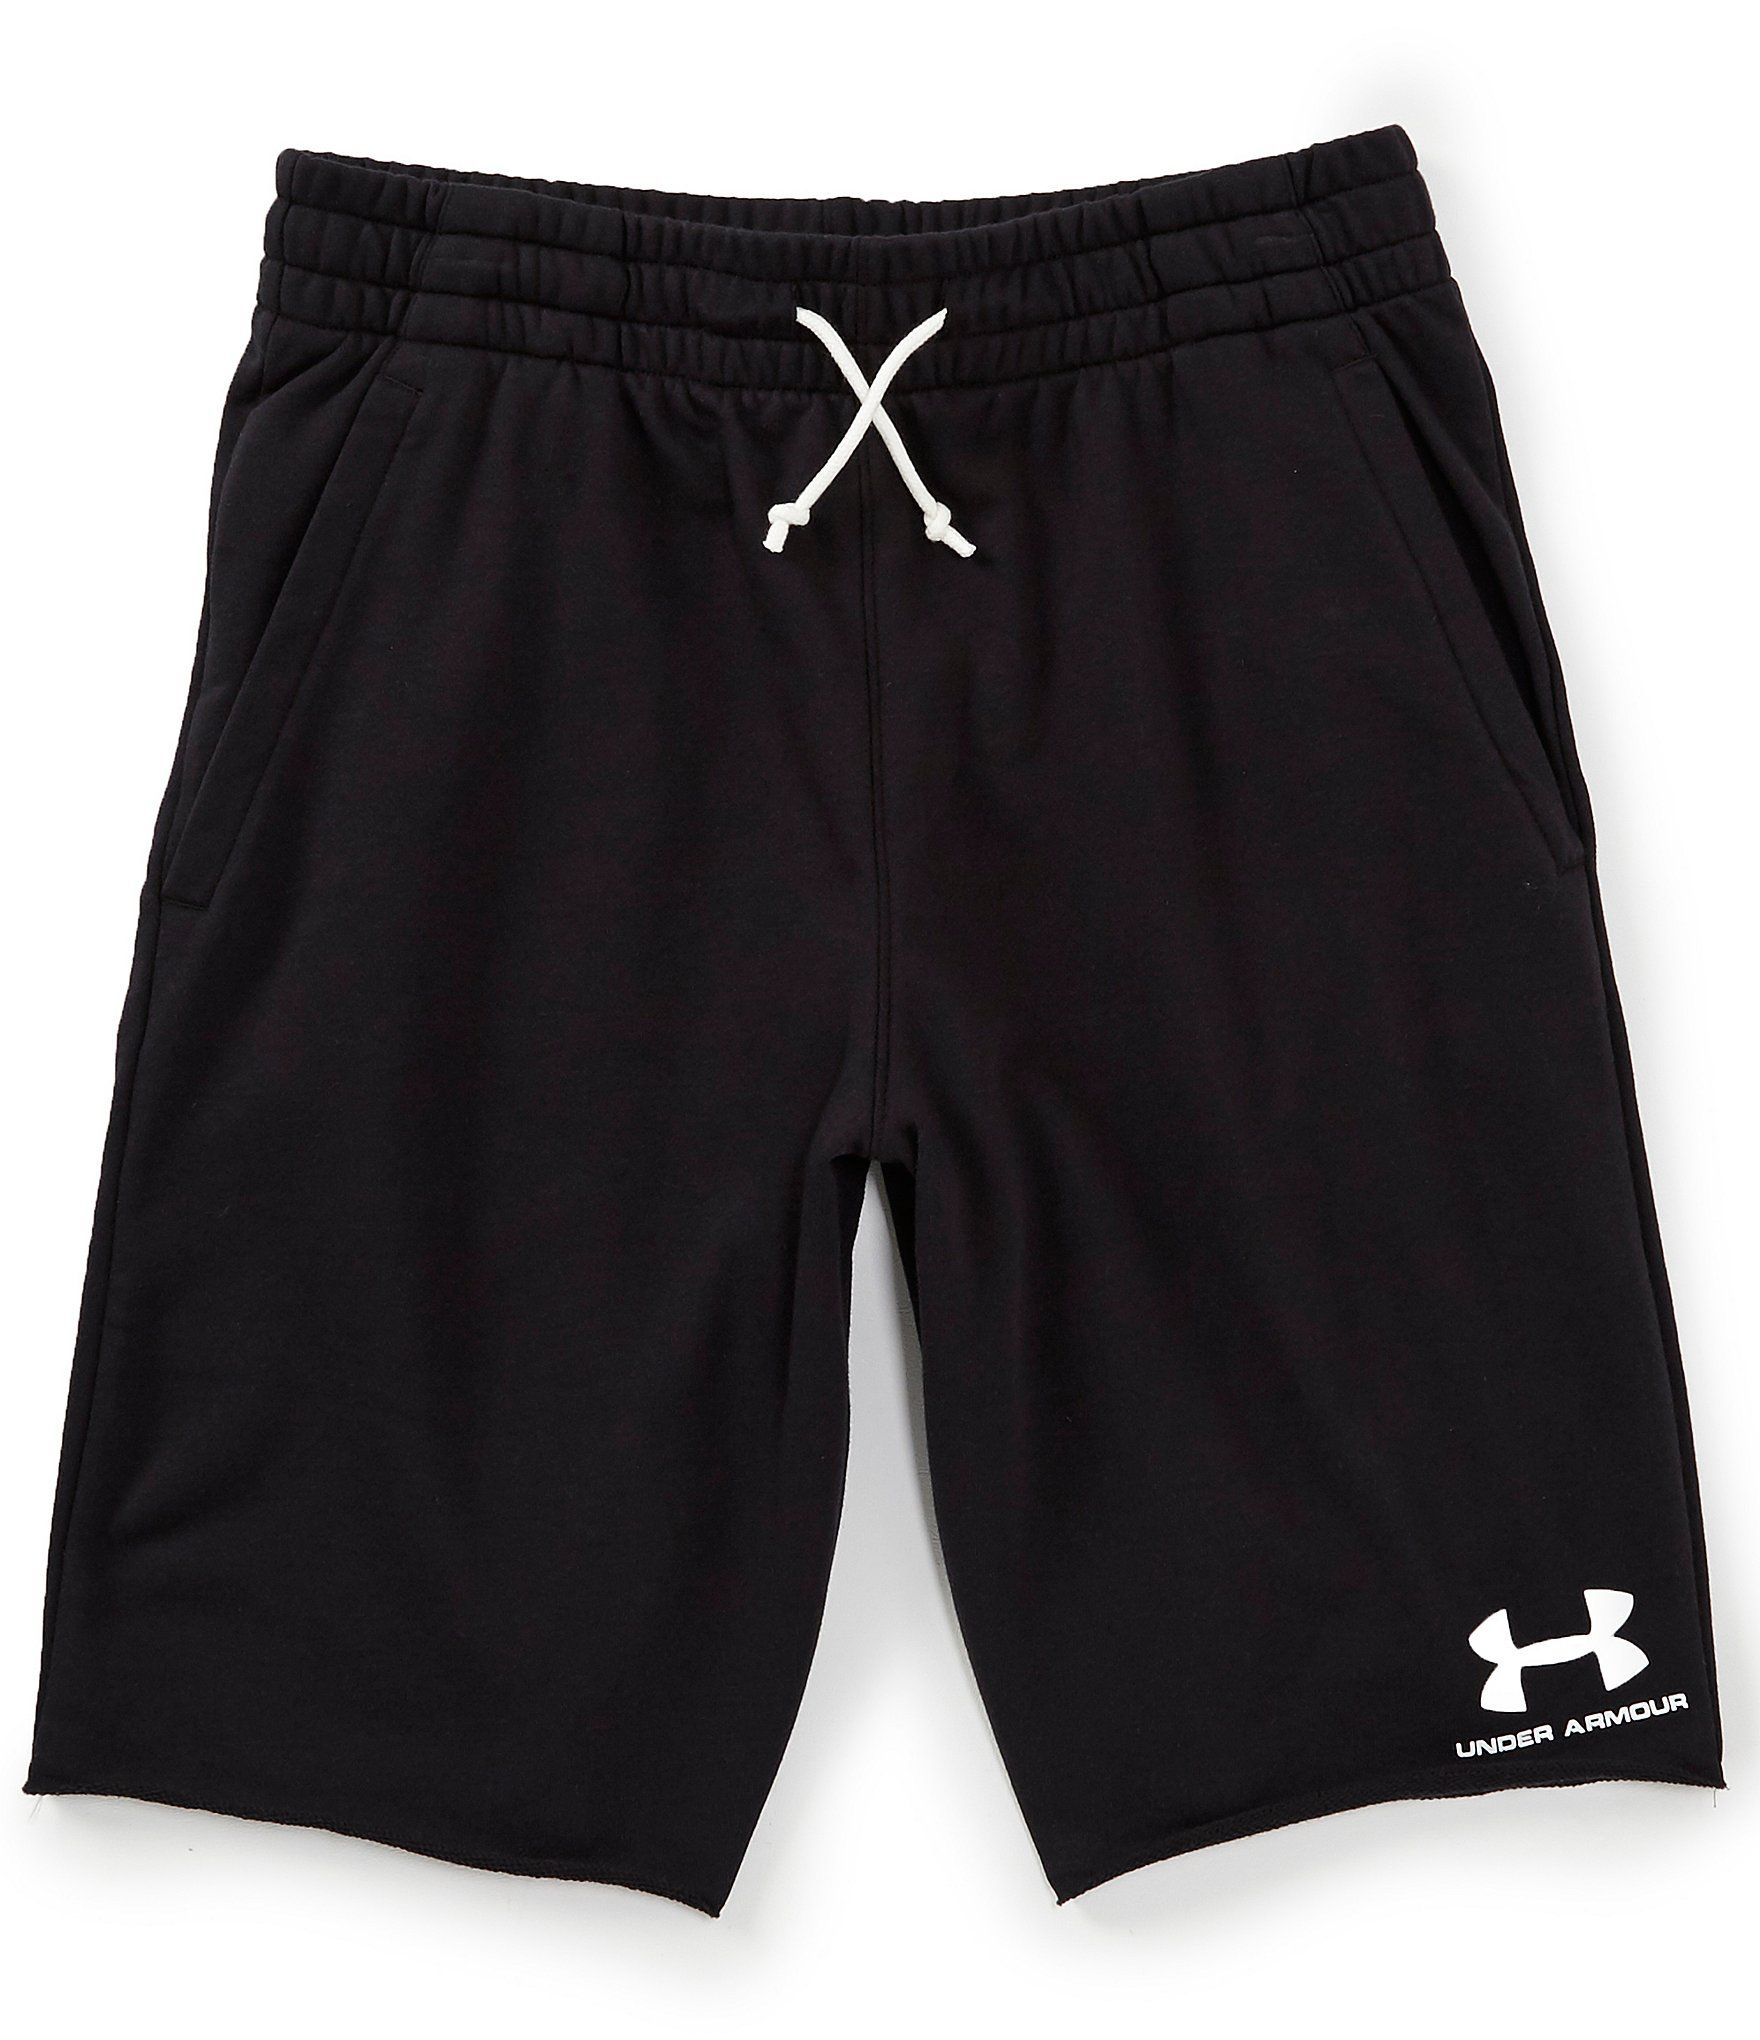 From Under Armour, these shorts feature: French Terry has a smooth outer layer & a warm, soft inner layer Material wicks sweat & dries really fast Encased elastic waistband with external drawcord & raw edge finish Open hand pockets Embroidered logo Raw edge hem Inseam: 10.5